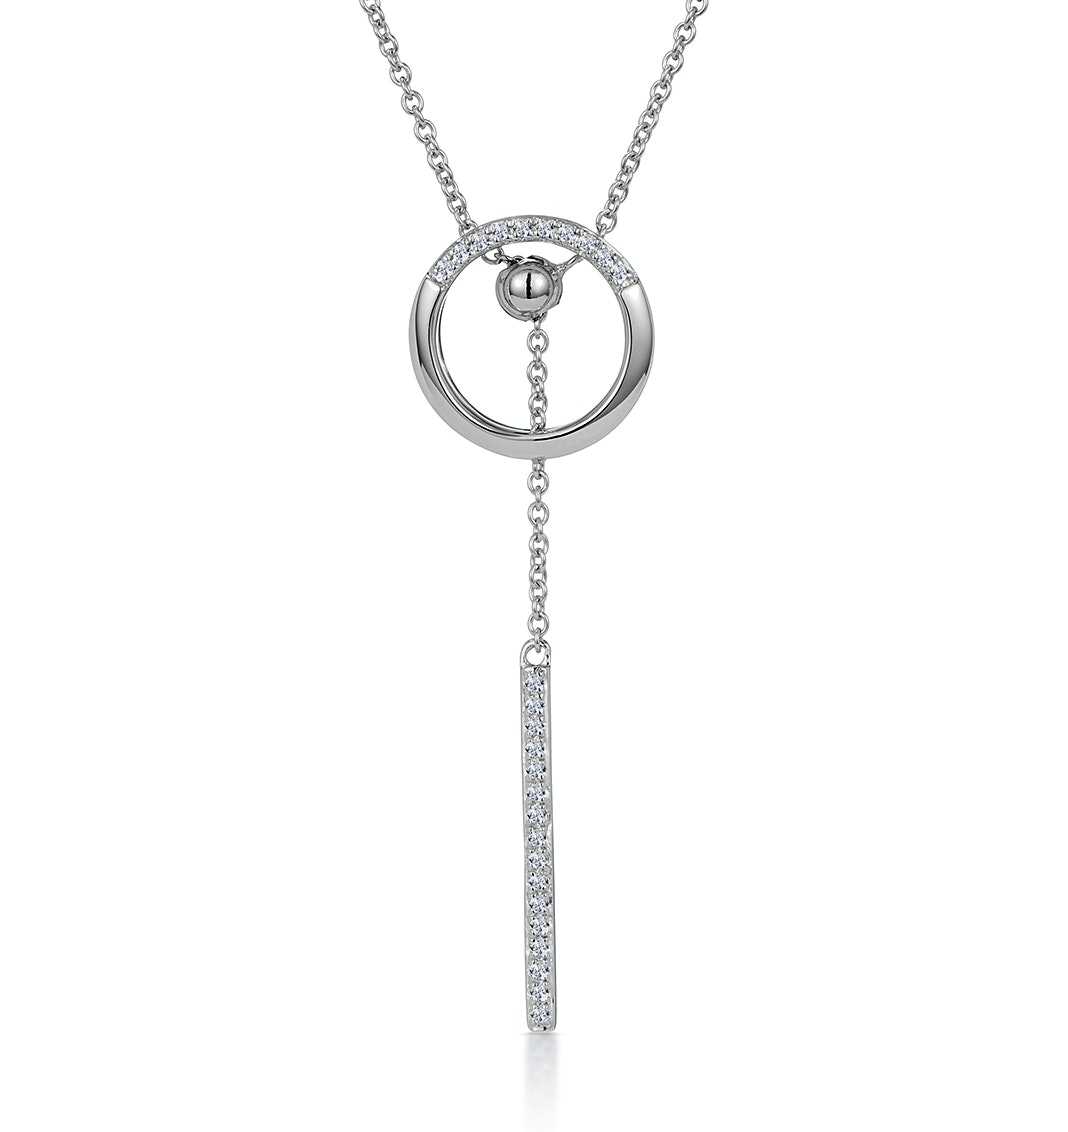 Circle and Bar Diamond Stellato Necklace in 9K White Gold